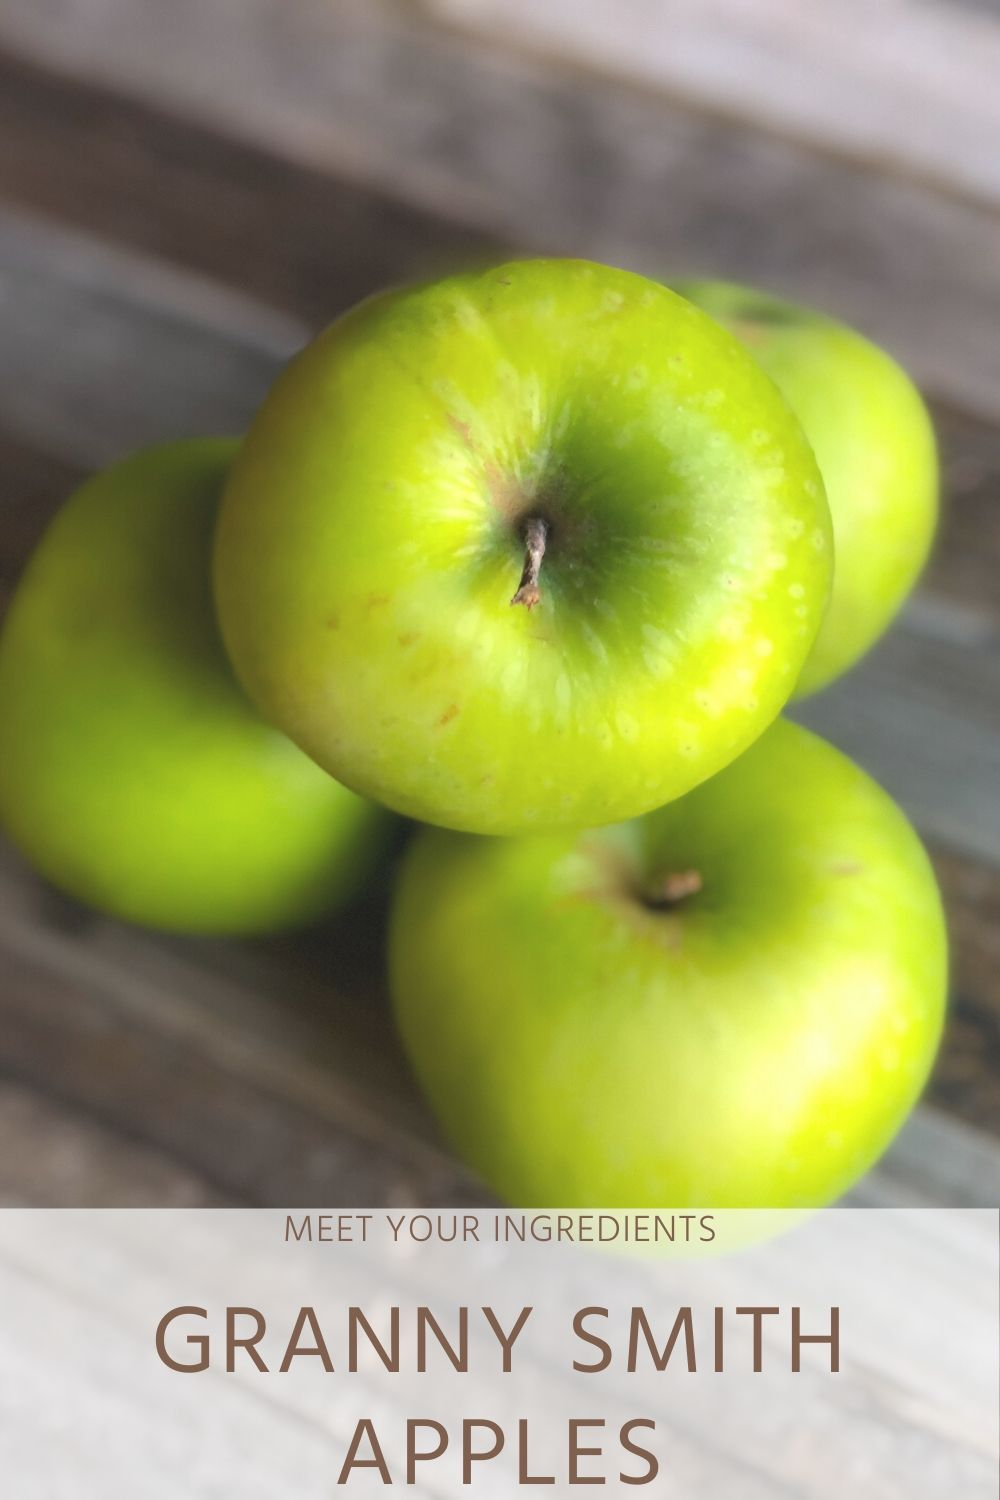 Meet Your Ingredients: Granny Smith Apples